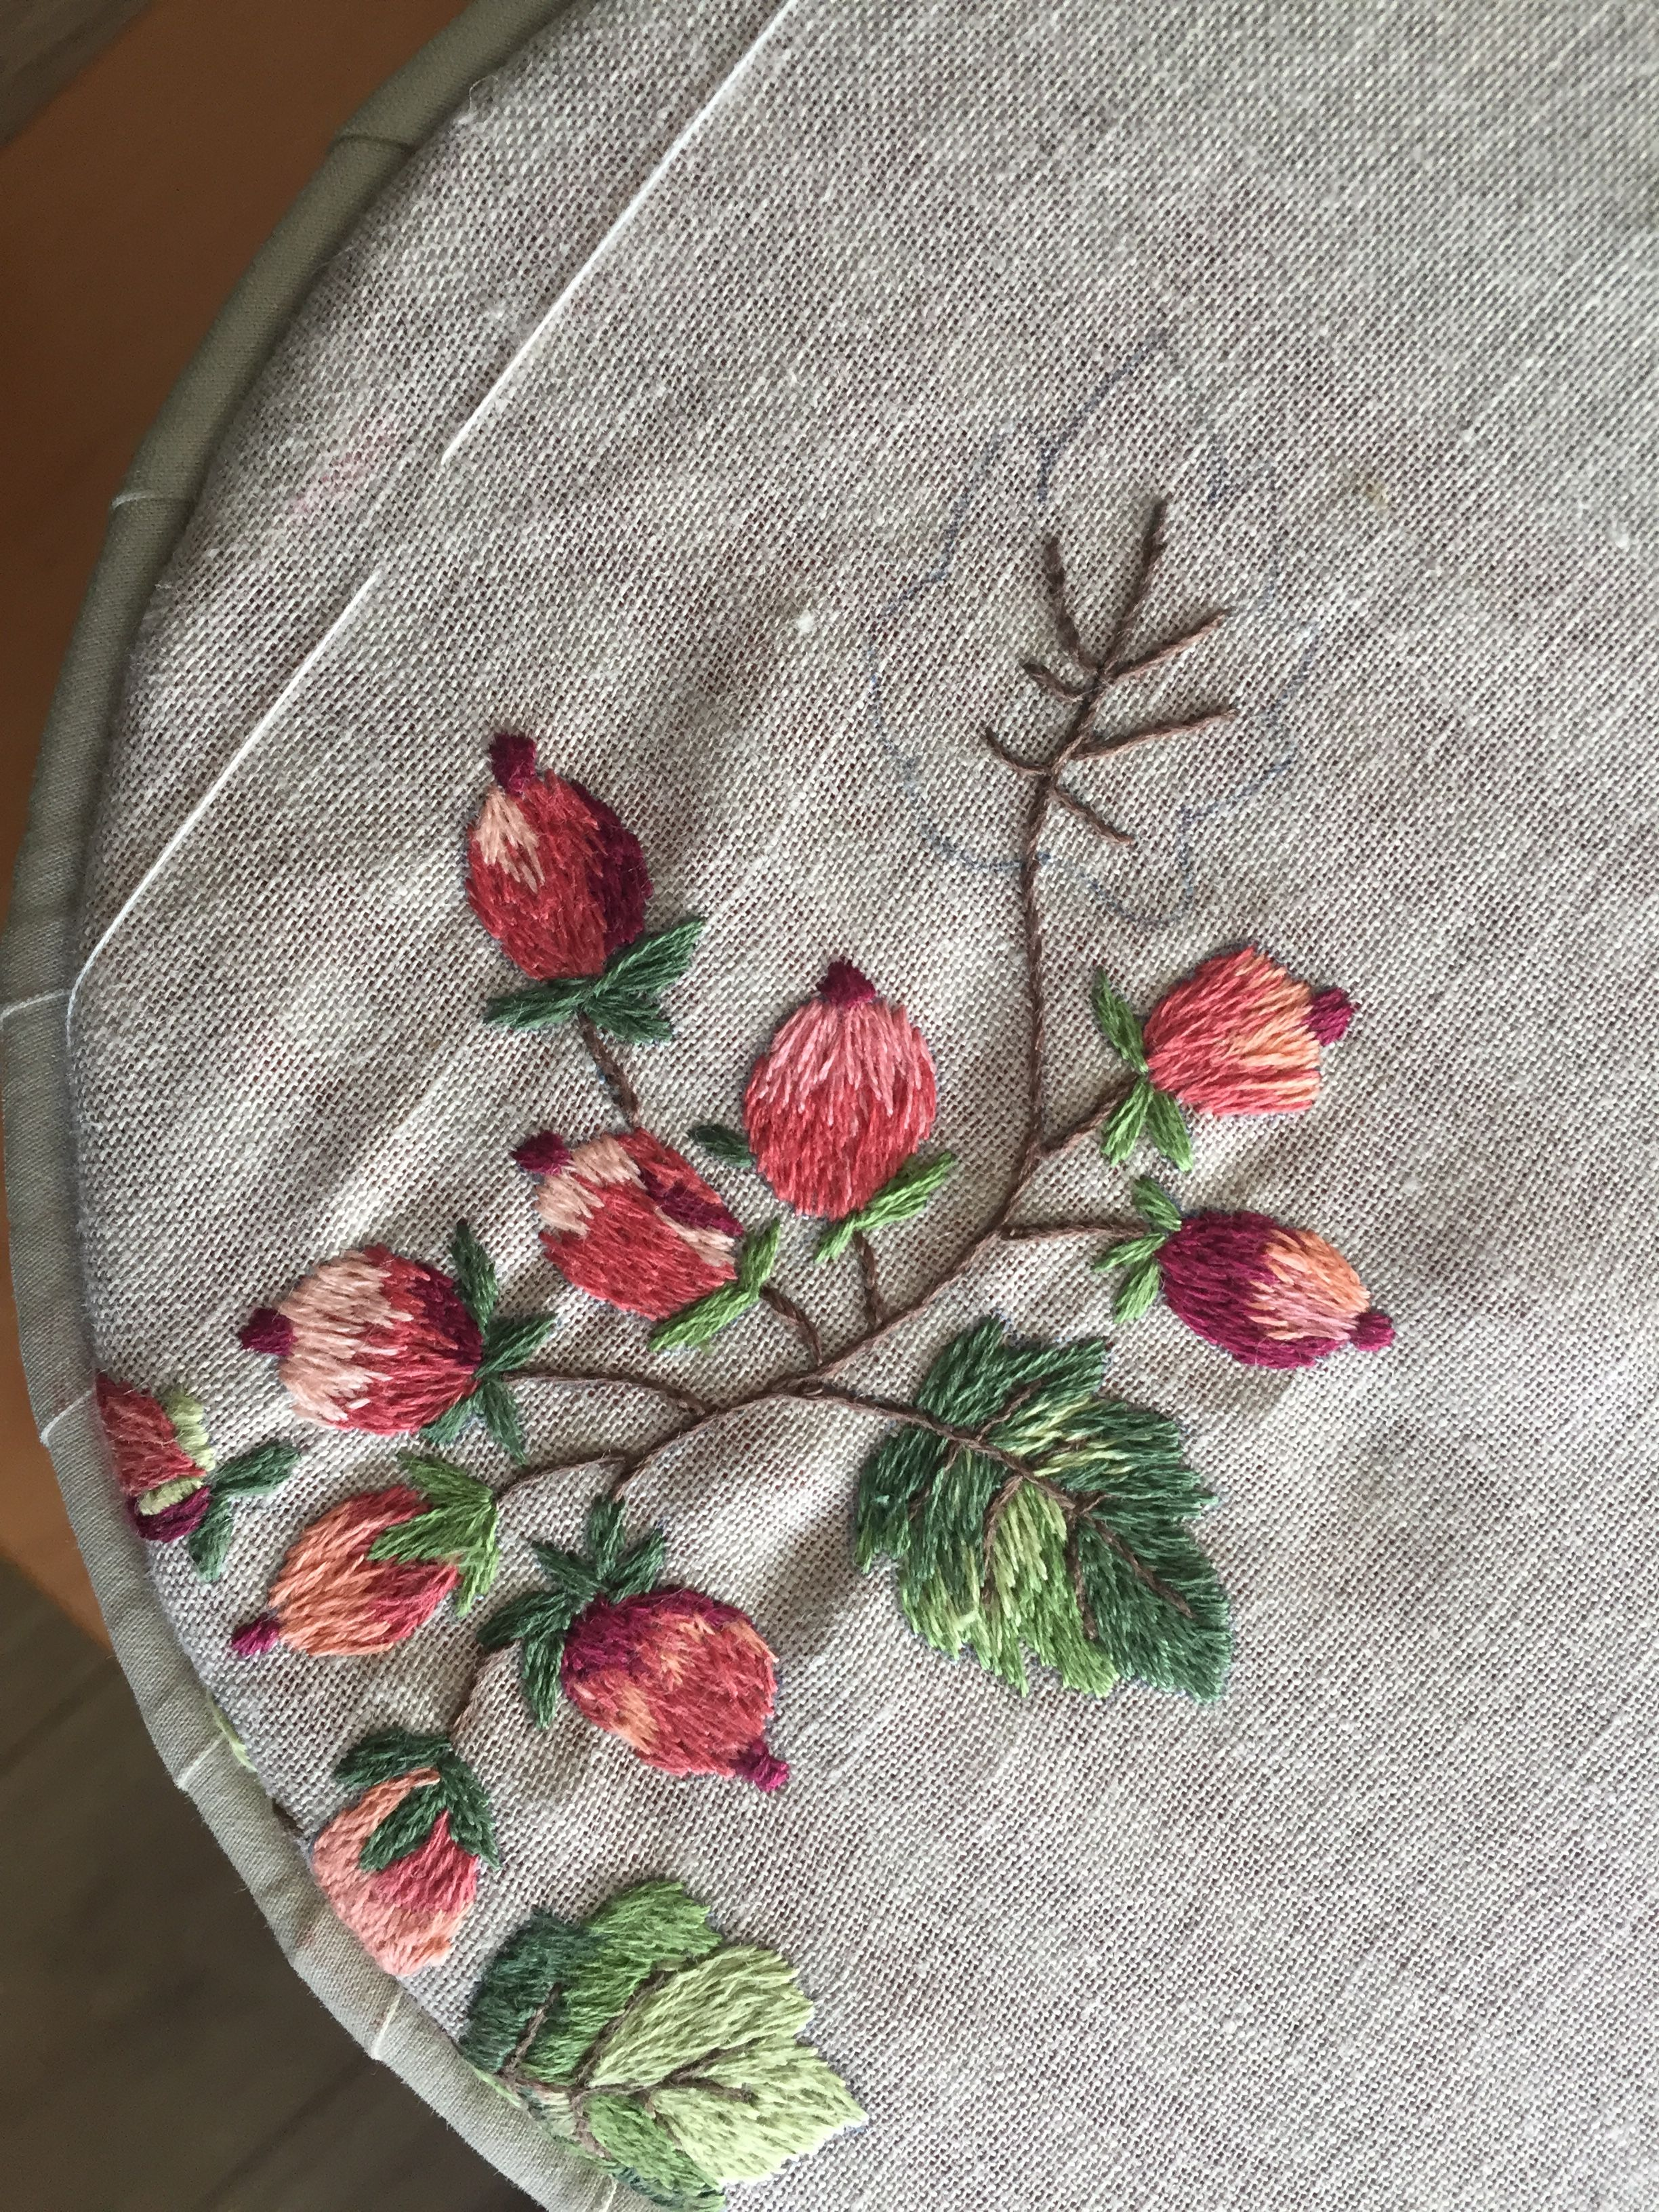 Pin By Aubrey Knight On Embroidery Ideas Pinterest Embroidery